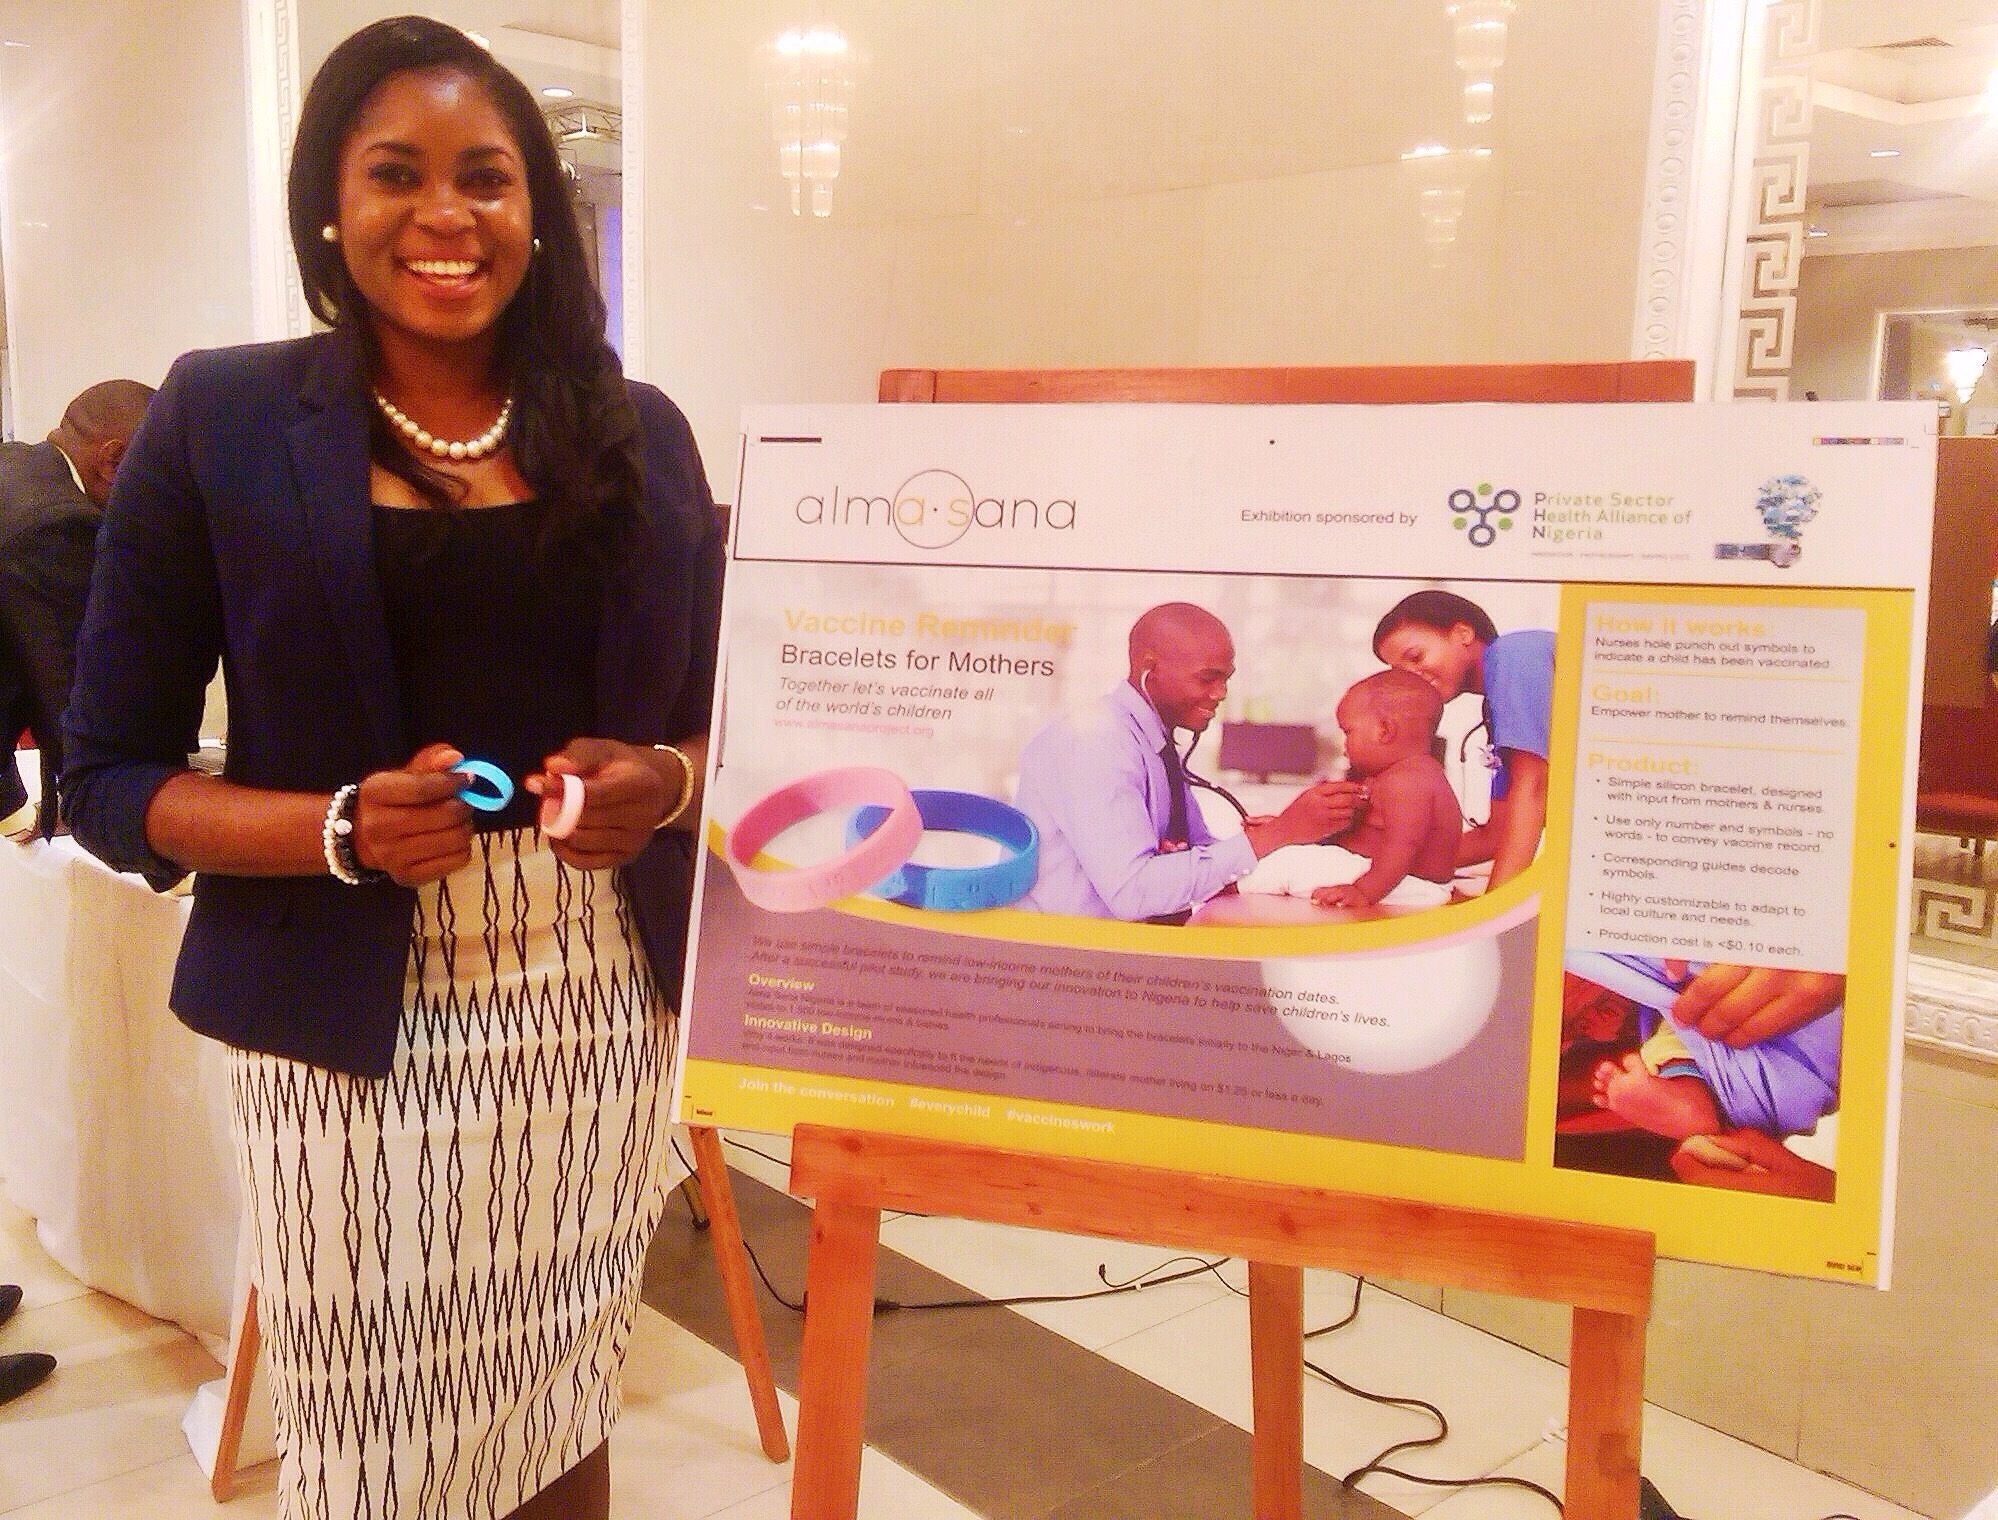 Congrats to Shola Molemodile and the Alma Sana Nigeria team for making it into the top 12 finalists of the inaugural Nigerian Healthcare Innovation Award competition by the   Private Sector Health Alliance  . Although we did not win yesterday, we are proud to have made it this far. We will not stop until we have achieved our mission of reaching every child with our life-saving vaccine reminder bracelets. Onward! Photo posted: October 29, 2015.